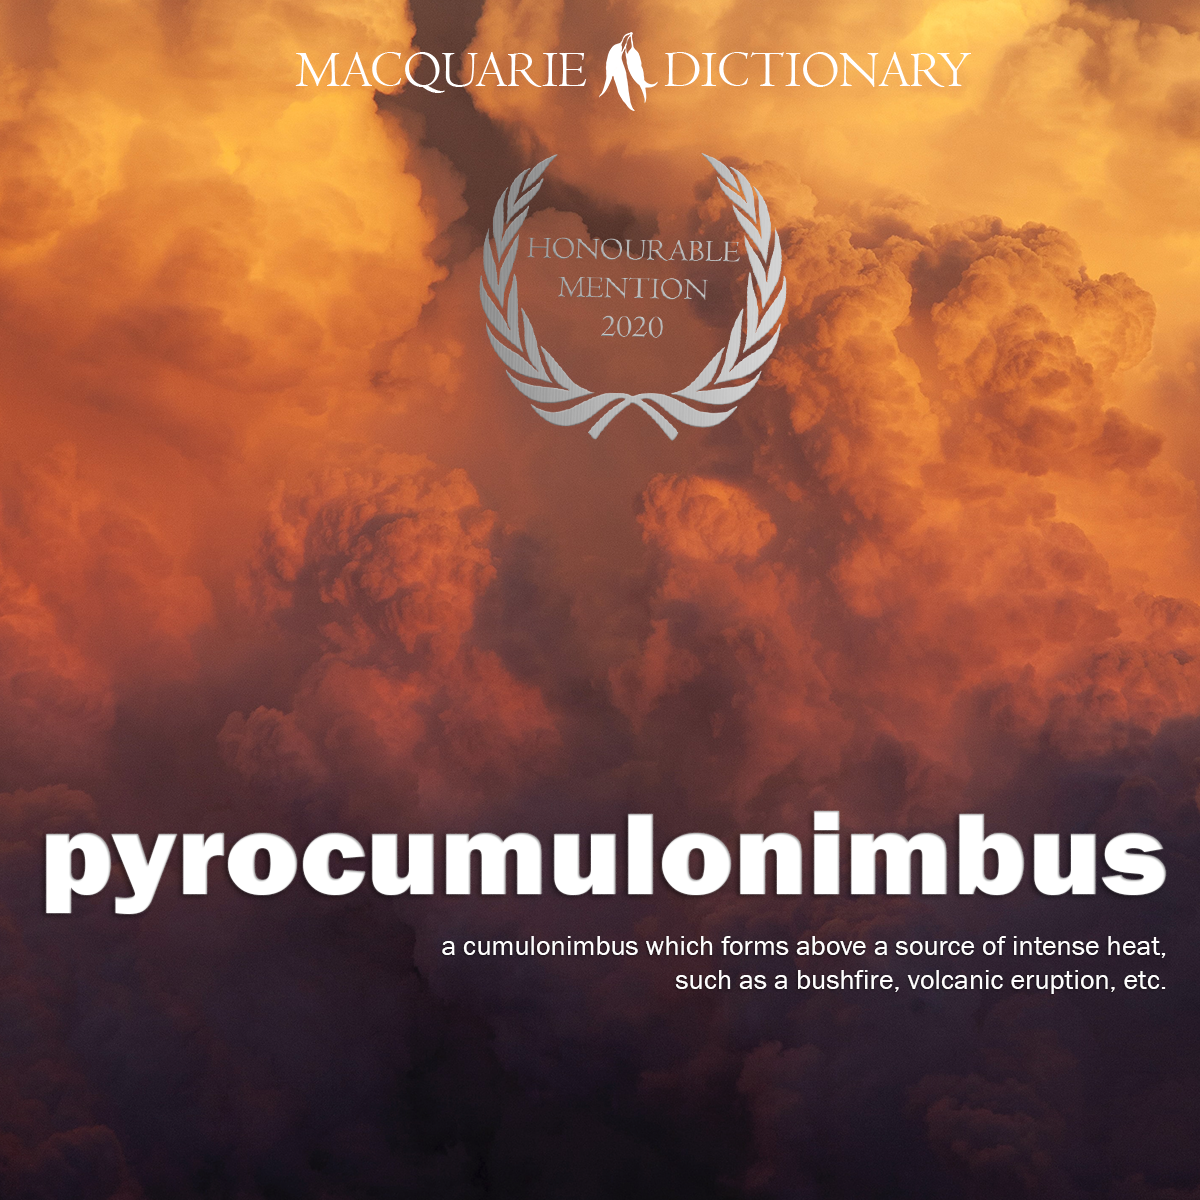 pyrocumulonimbus - a cumulonimbus which forms above a source of intense heat, such as a bushfire, volcanic eruption, etc.